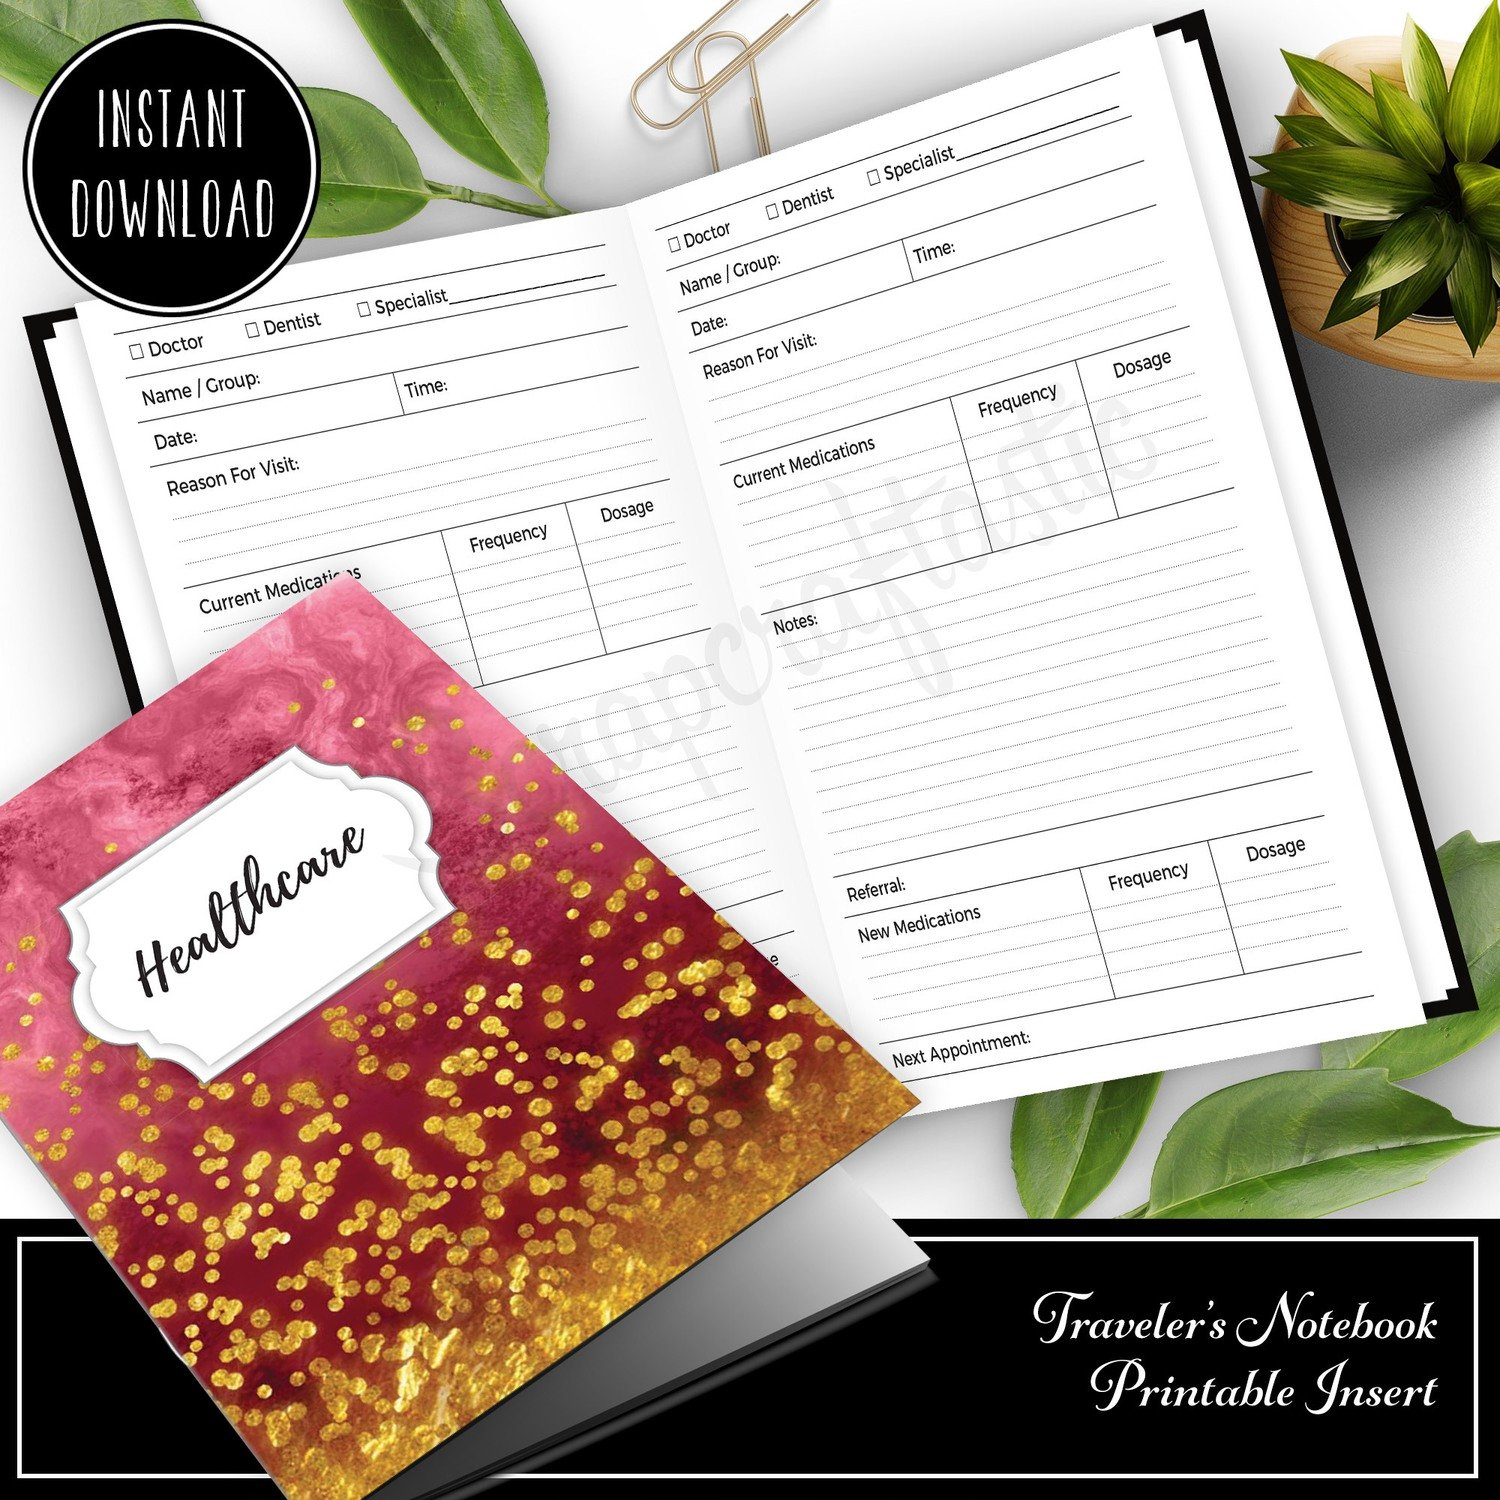 B6 TN - Healthcare Visit Log Traveler's Notebook Printable Insert